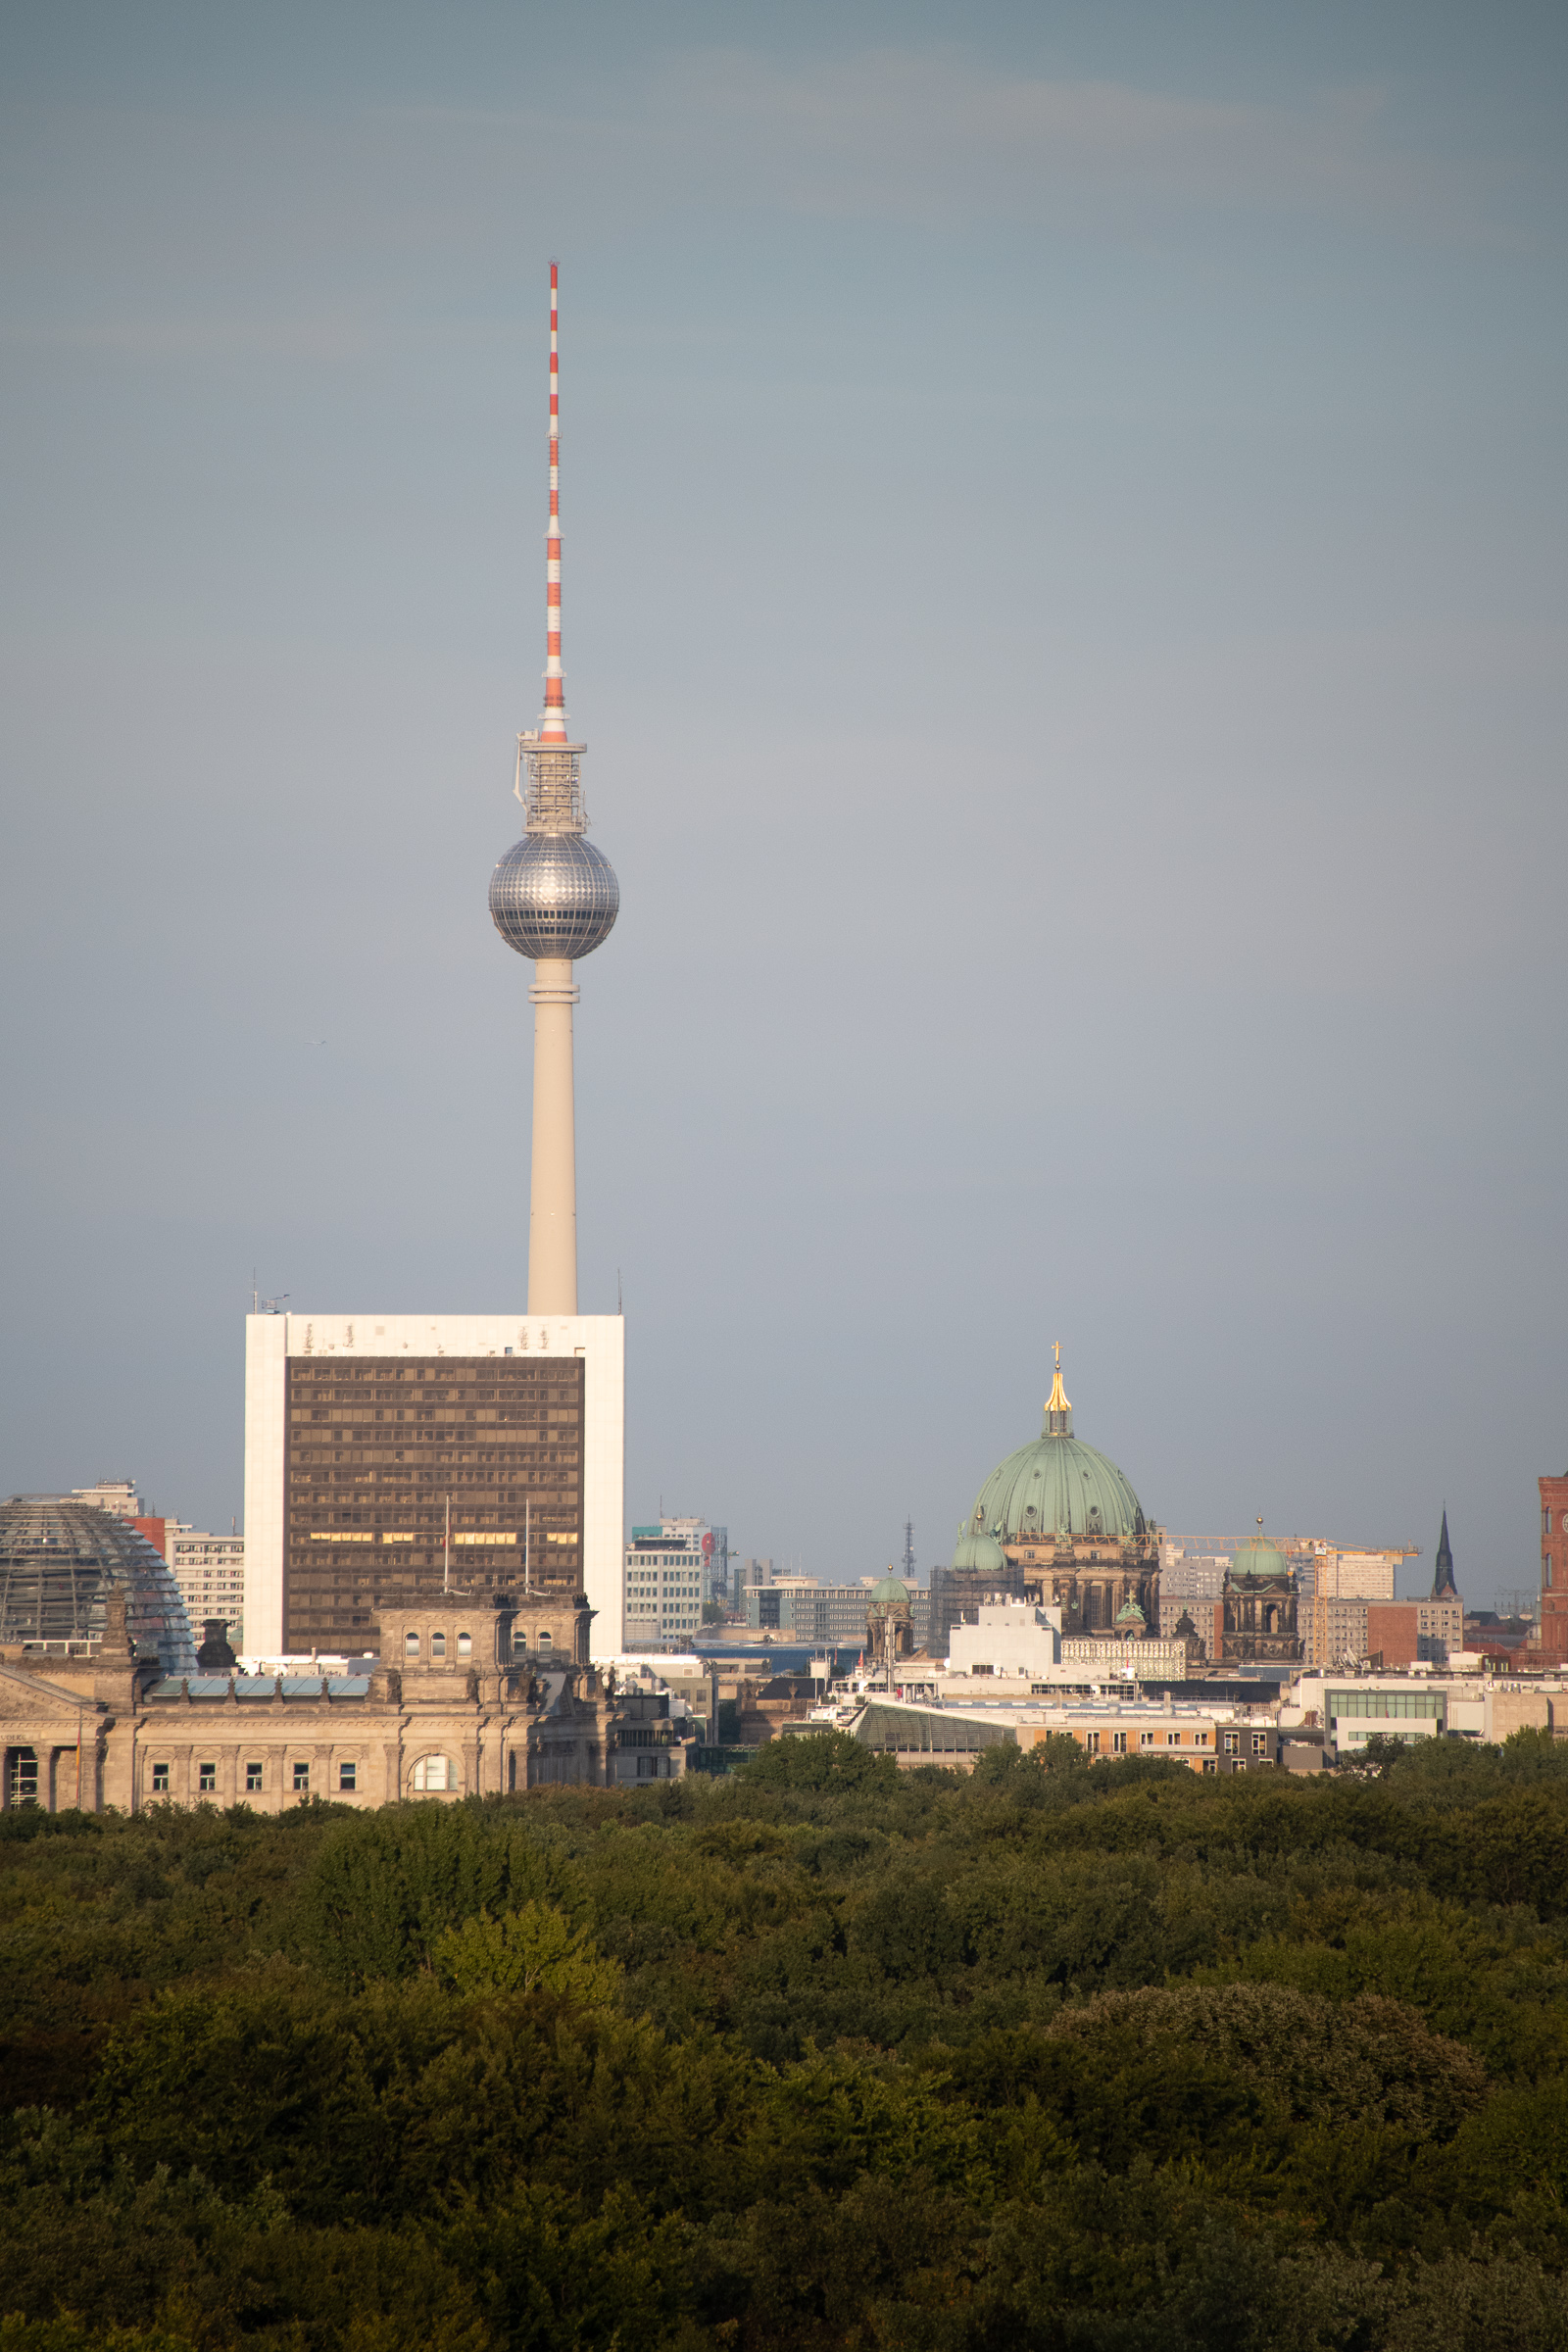 The TV Tower in the former East Berlin